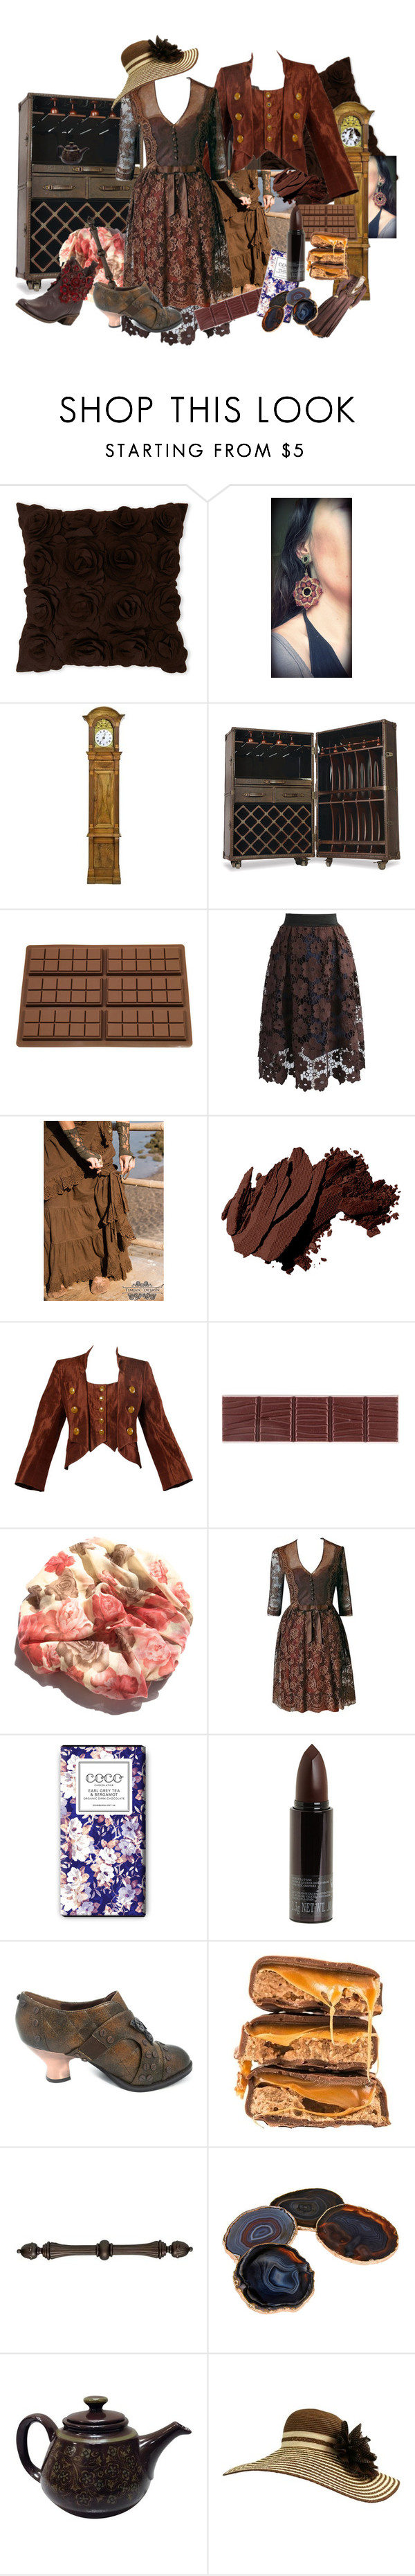 """""""Chocolate / Western"""" by amanda-anda-panda ❤ liked on Polyvore featuring Thos. Baker, Chicwish, Bobbi Brown Cosmetics, Christian Lacroix, Maggy Rouff, Serge Lutens, RabLabs and MIA"""